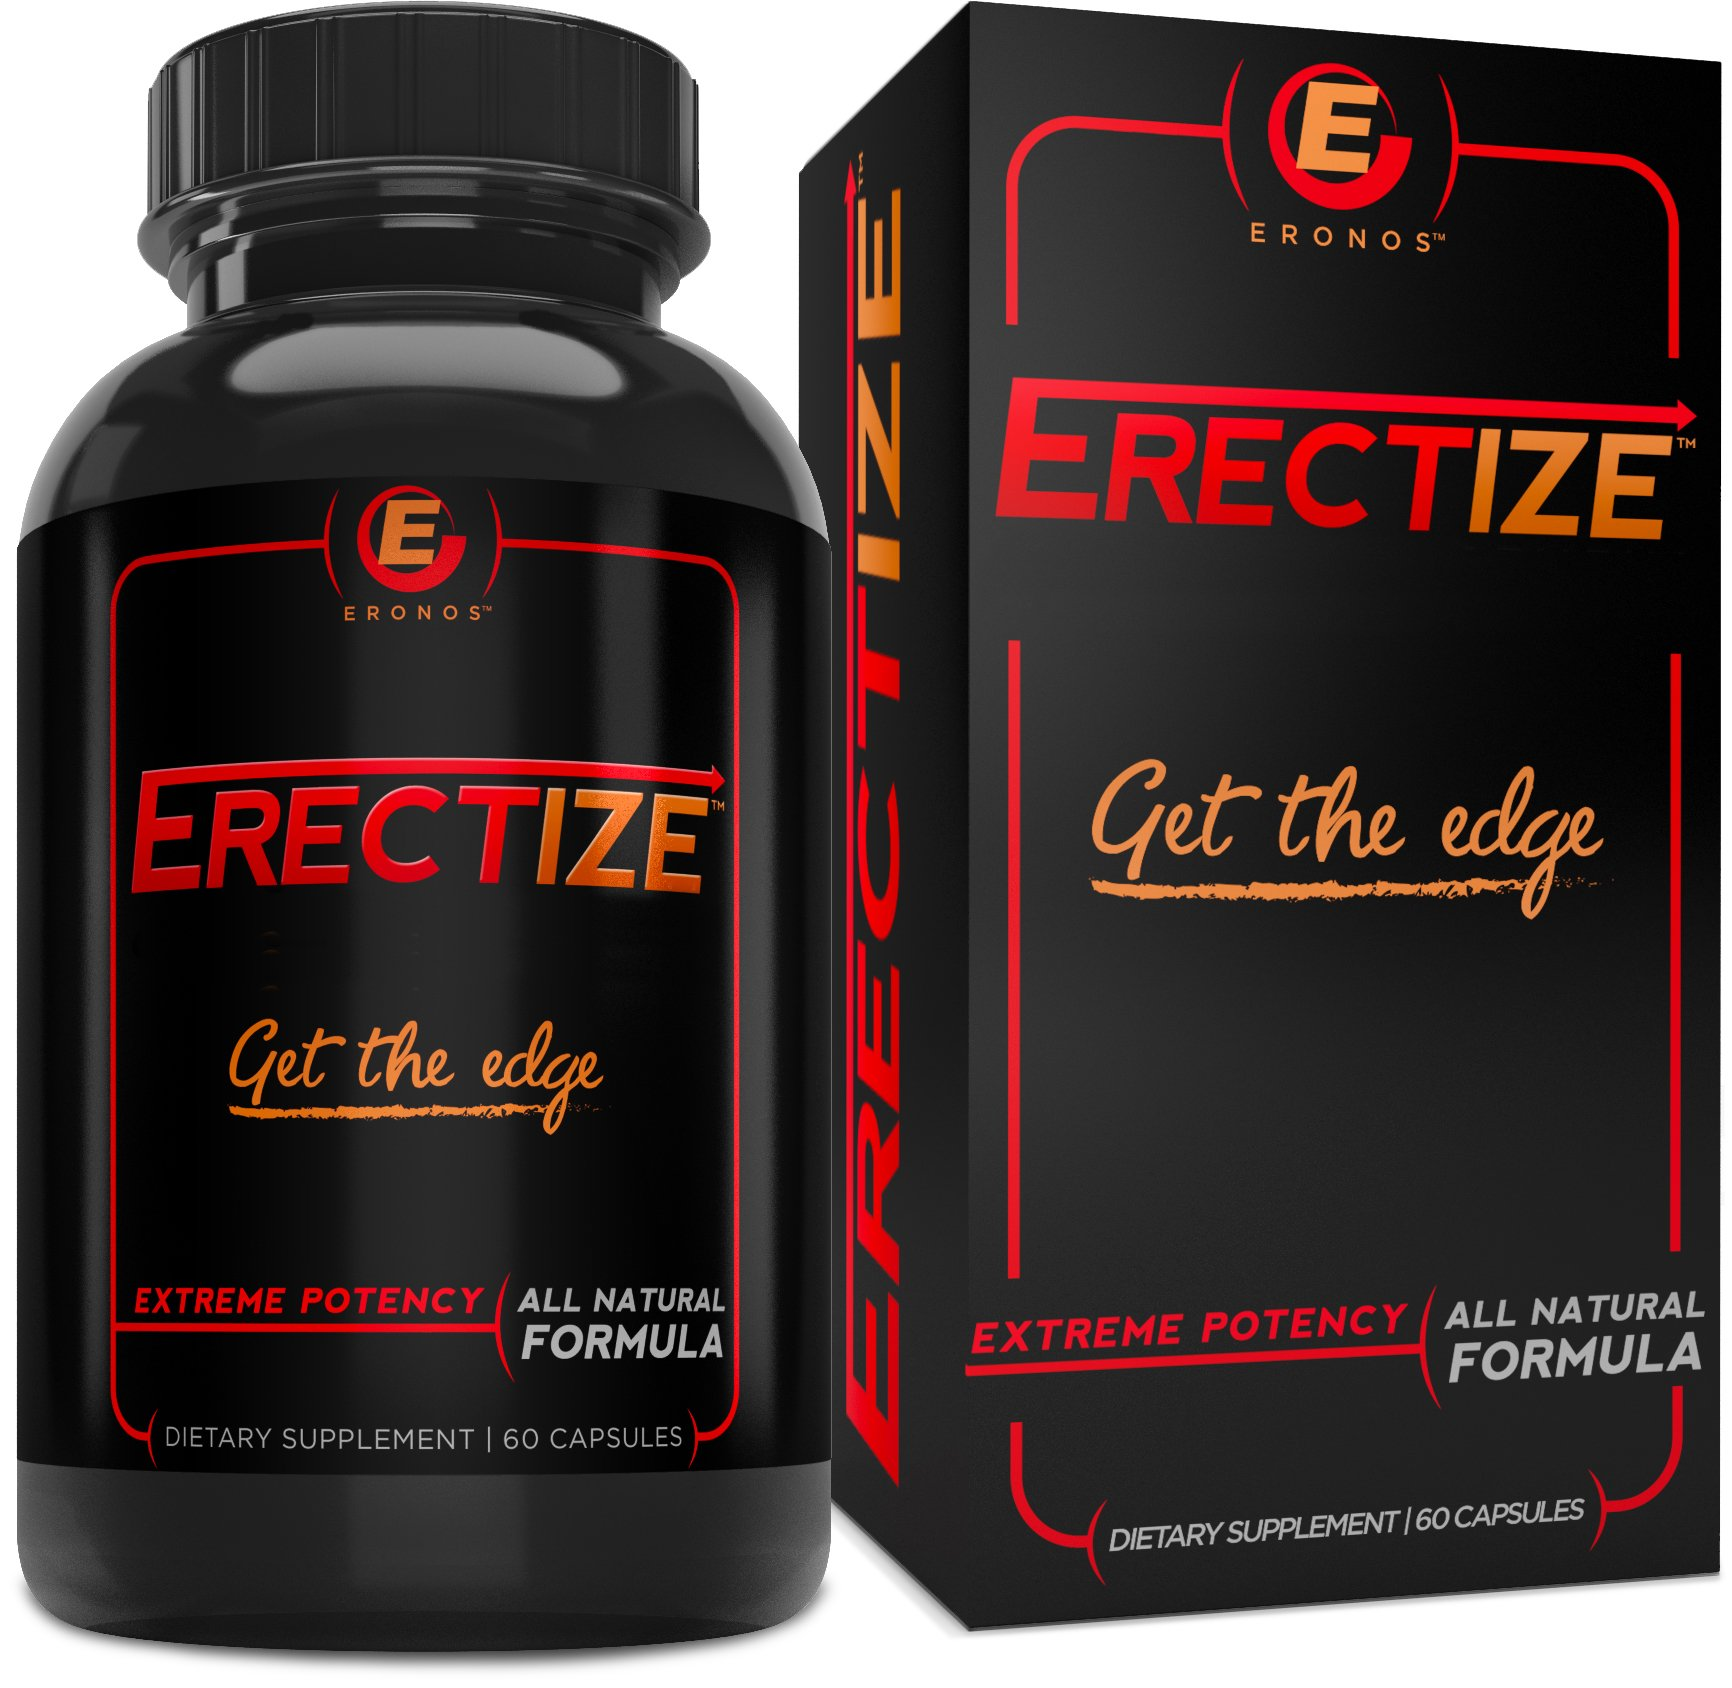 Amazon.com: Bigrize Top Rated Testosterone Booster, 60 Capsules - Increase Energy, Male Health